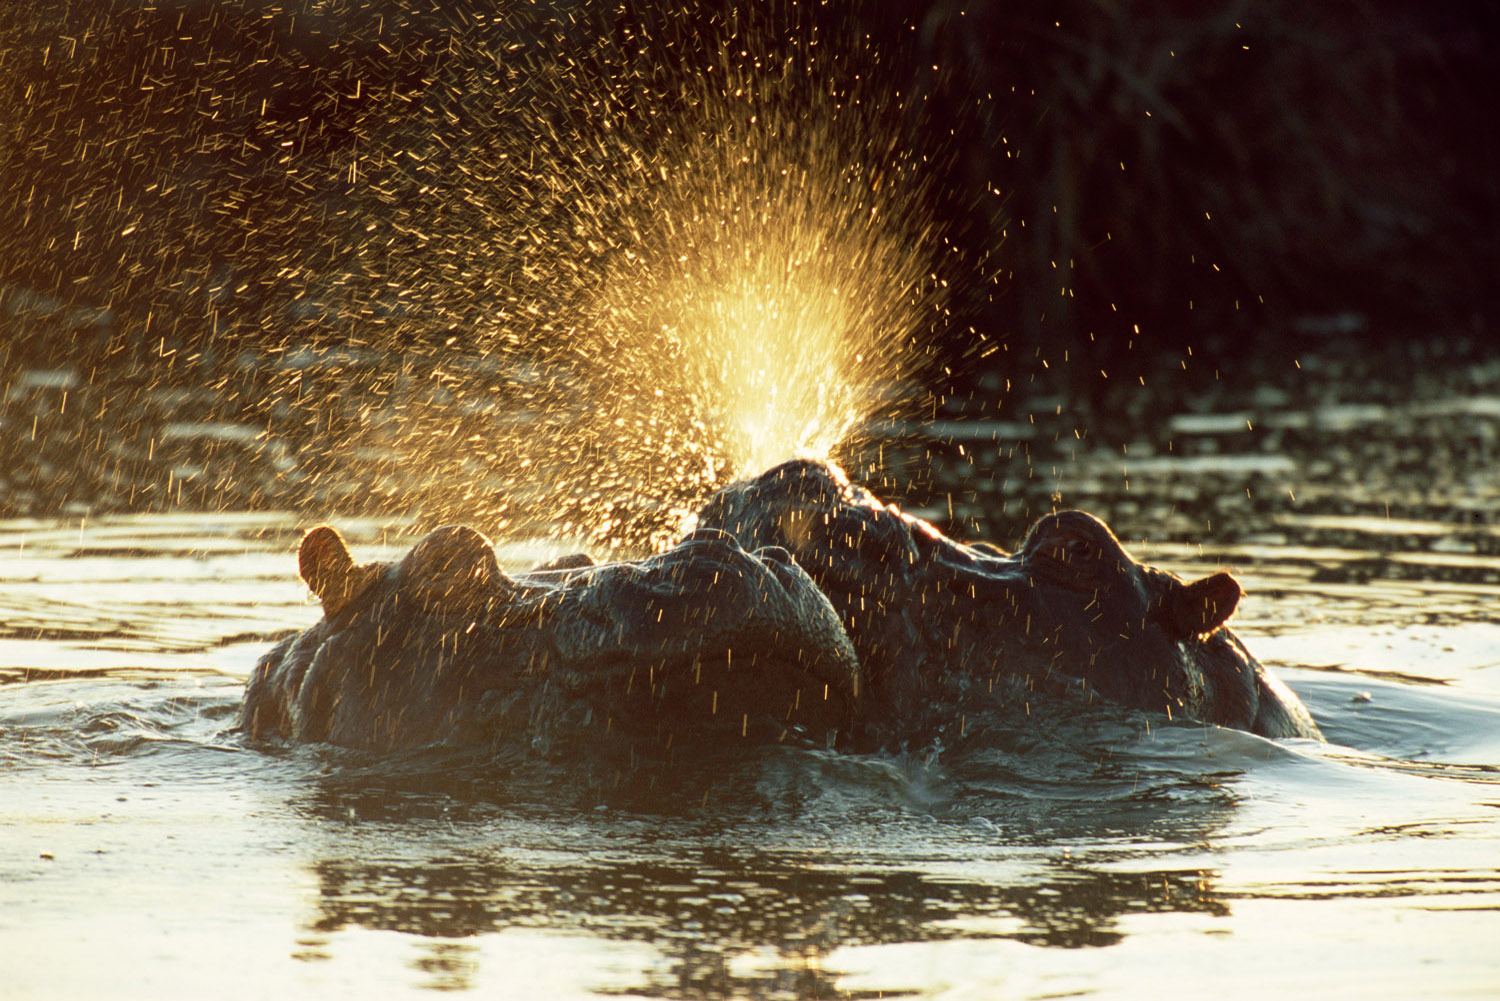 Bull hippos sparring at dawn, Tsavo West National Park, Kenya